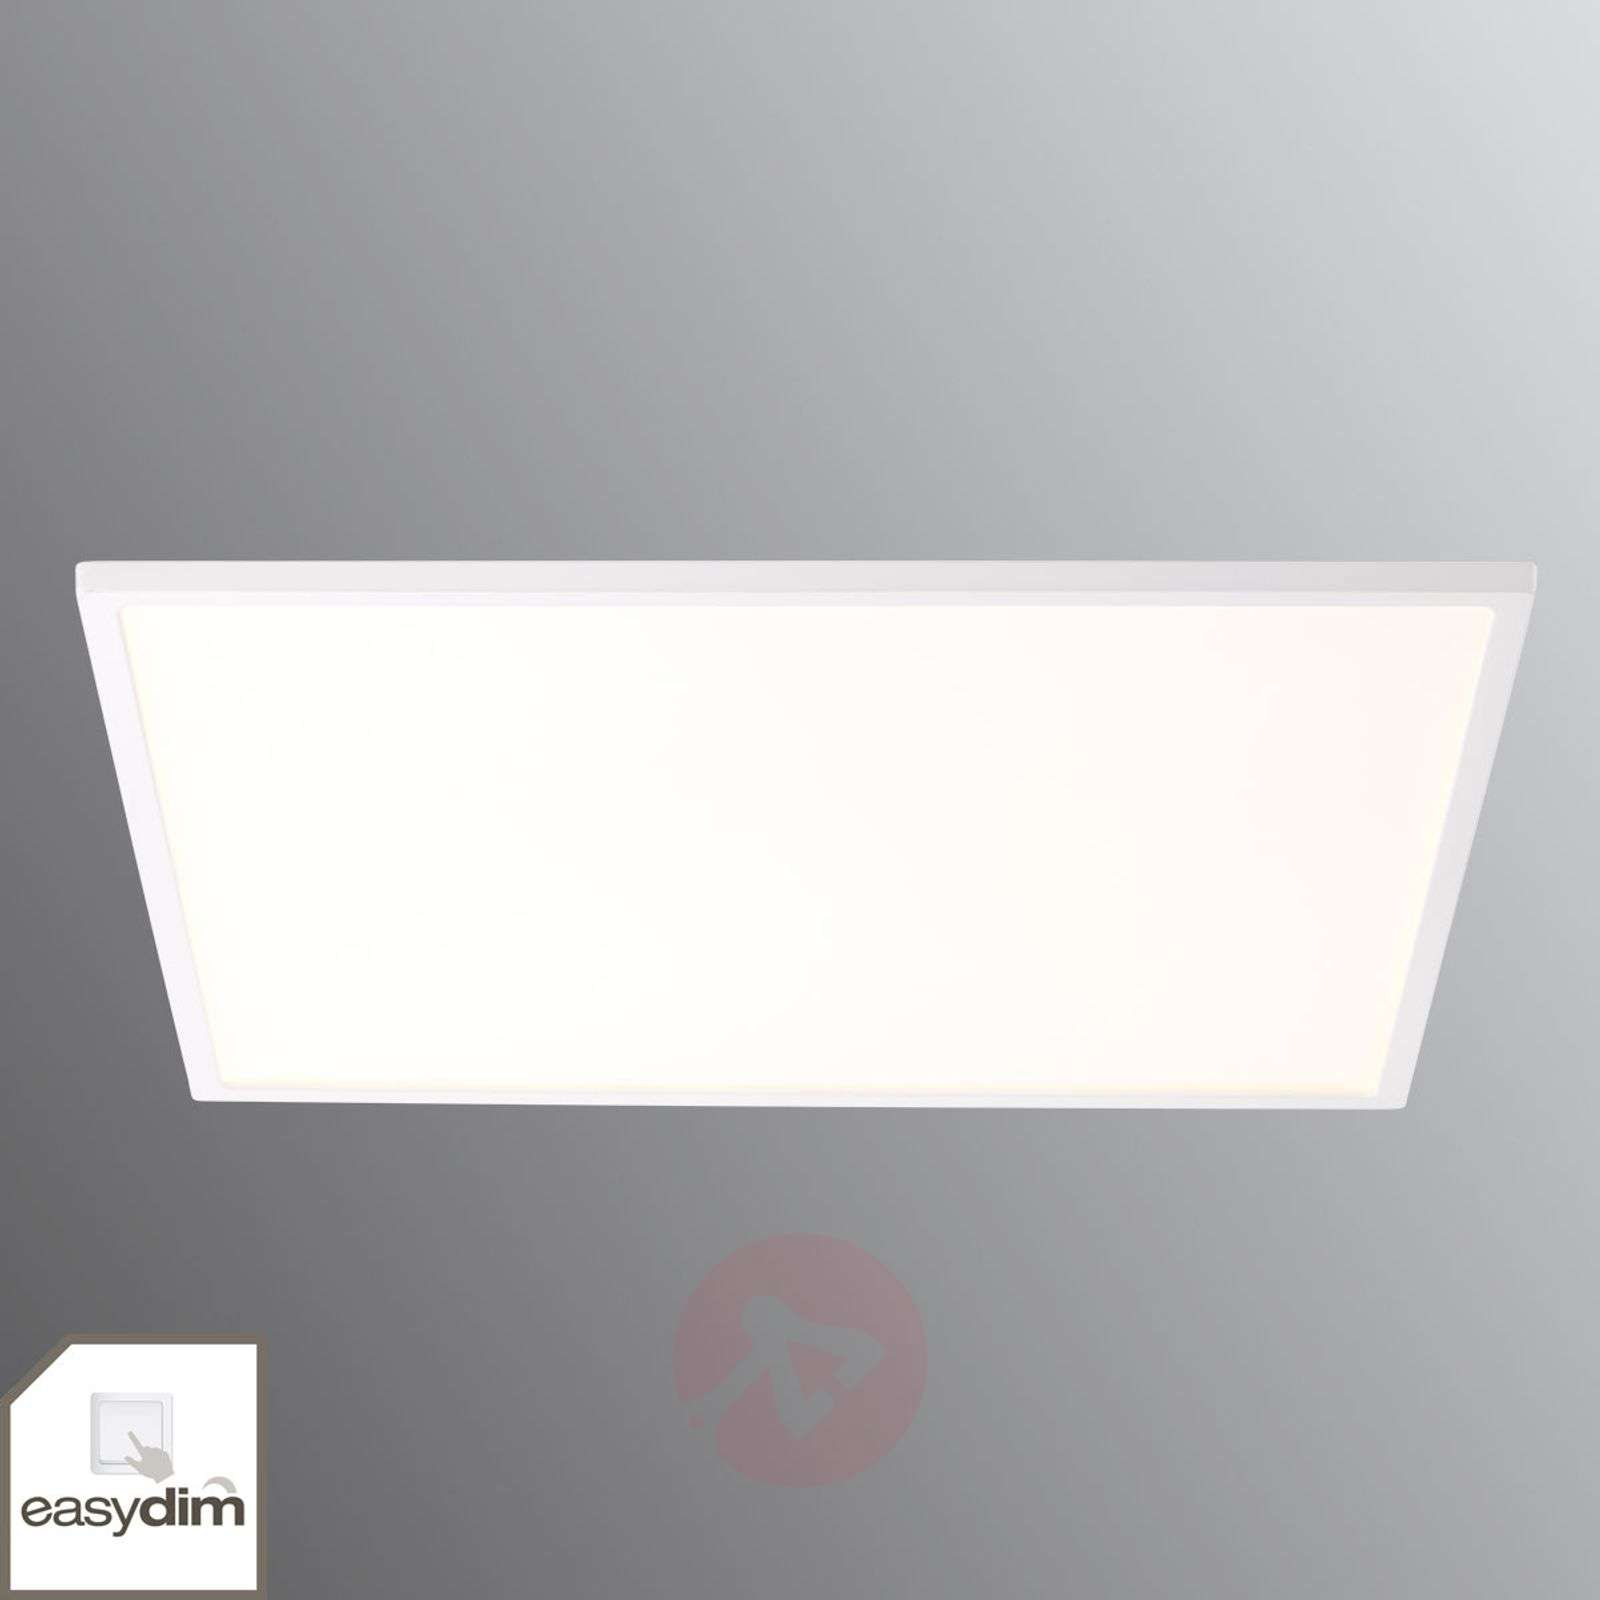 LED ceiling light Ceres, dimmable via wall switch-1509254-01